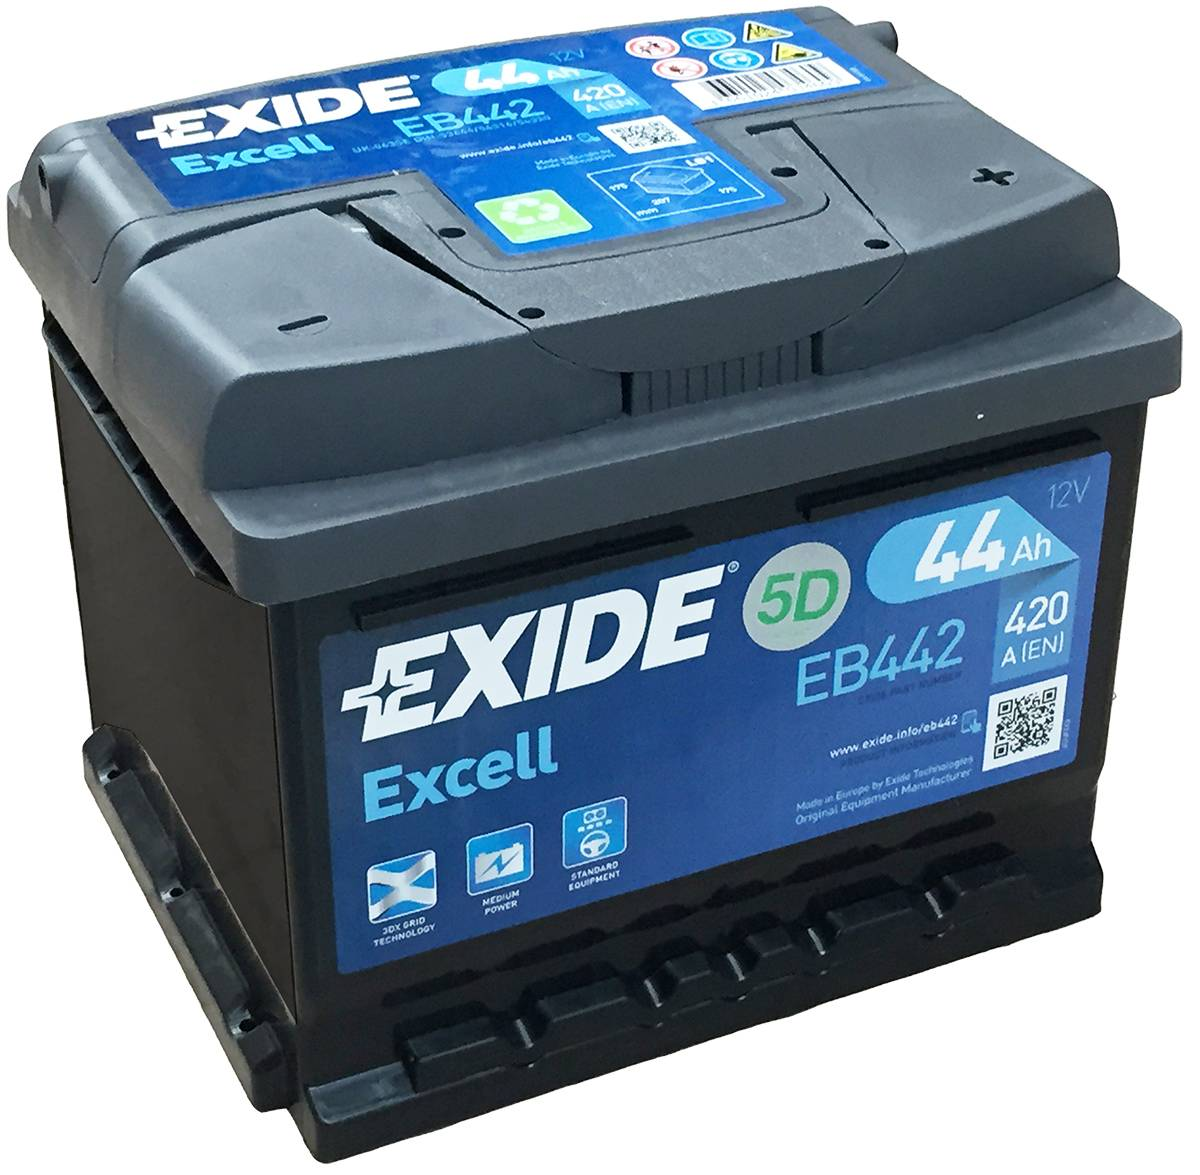 EB442 Exide Excell Car Battery 063SE - Car Batteries ...